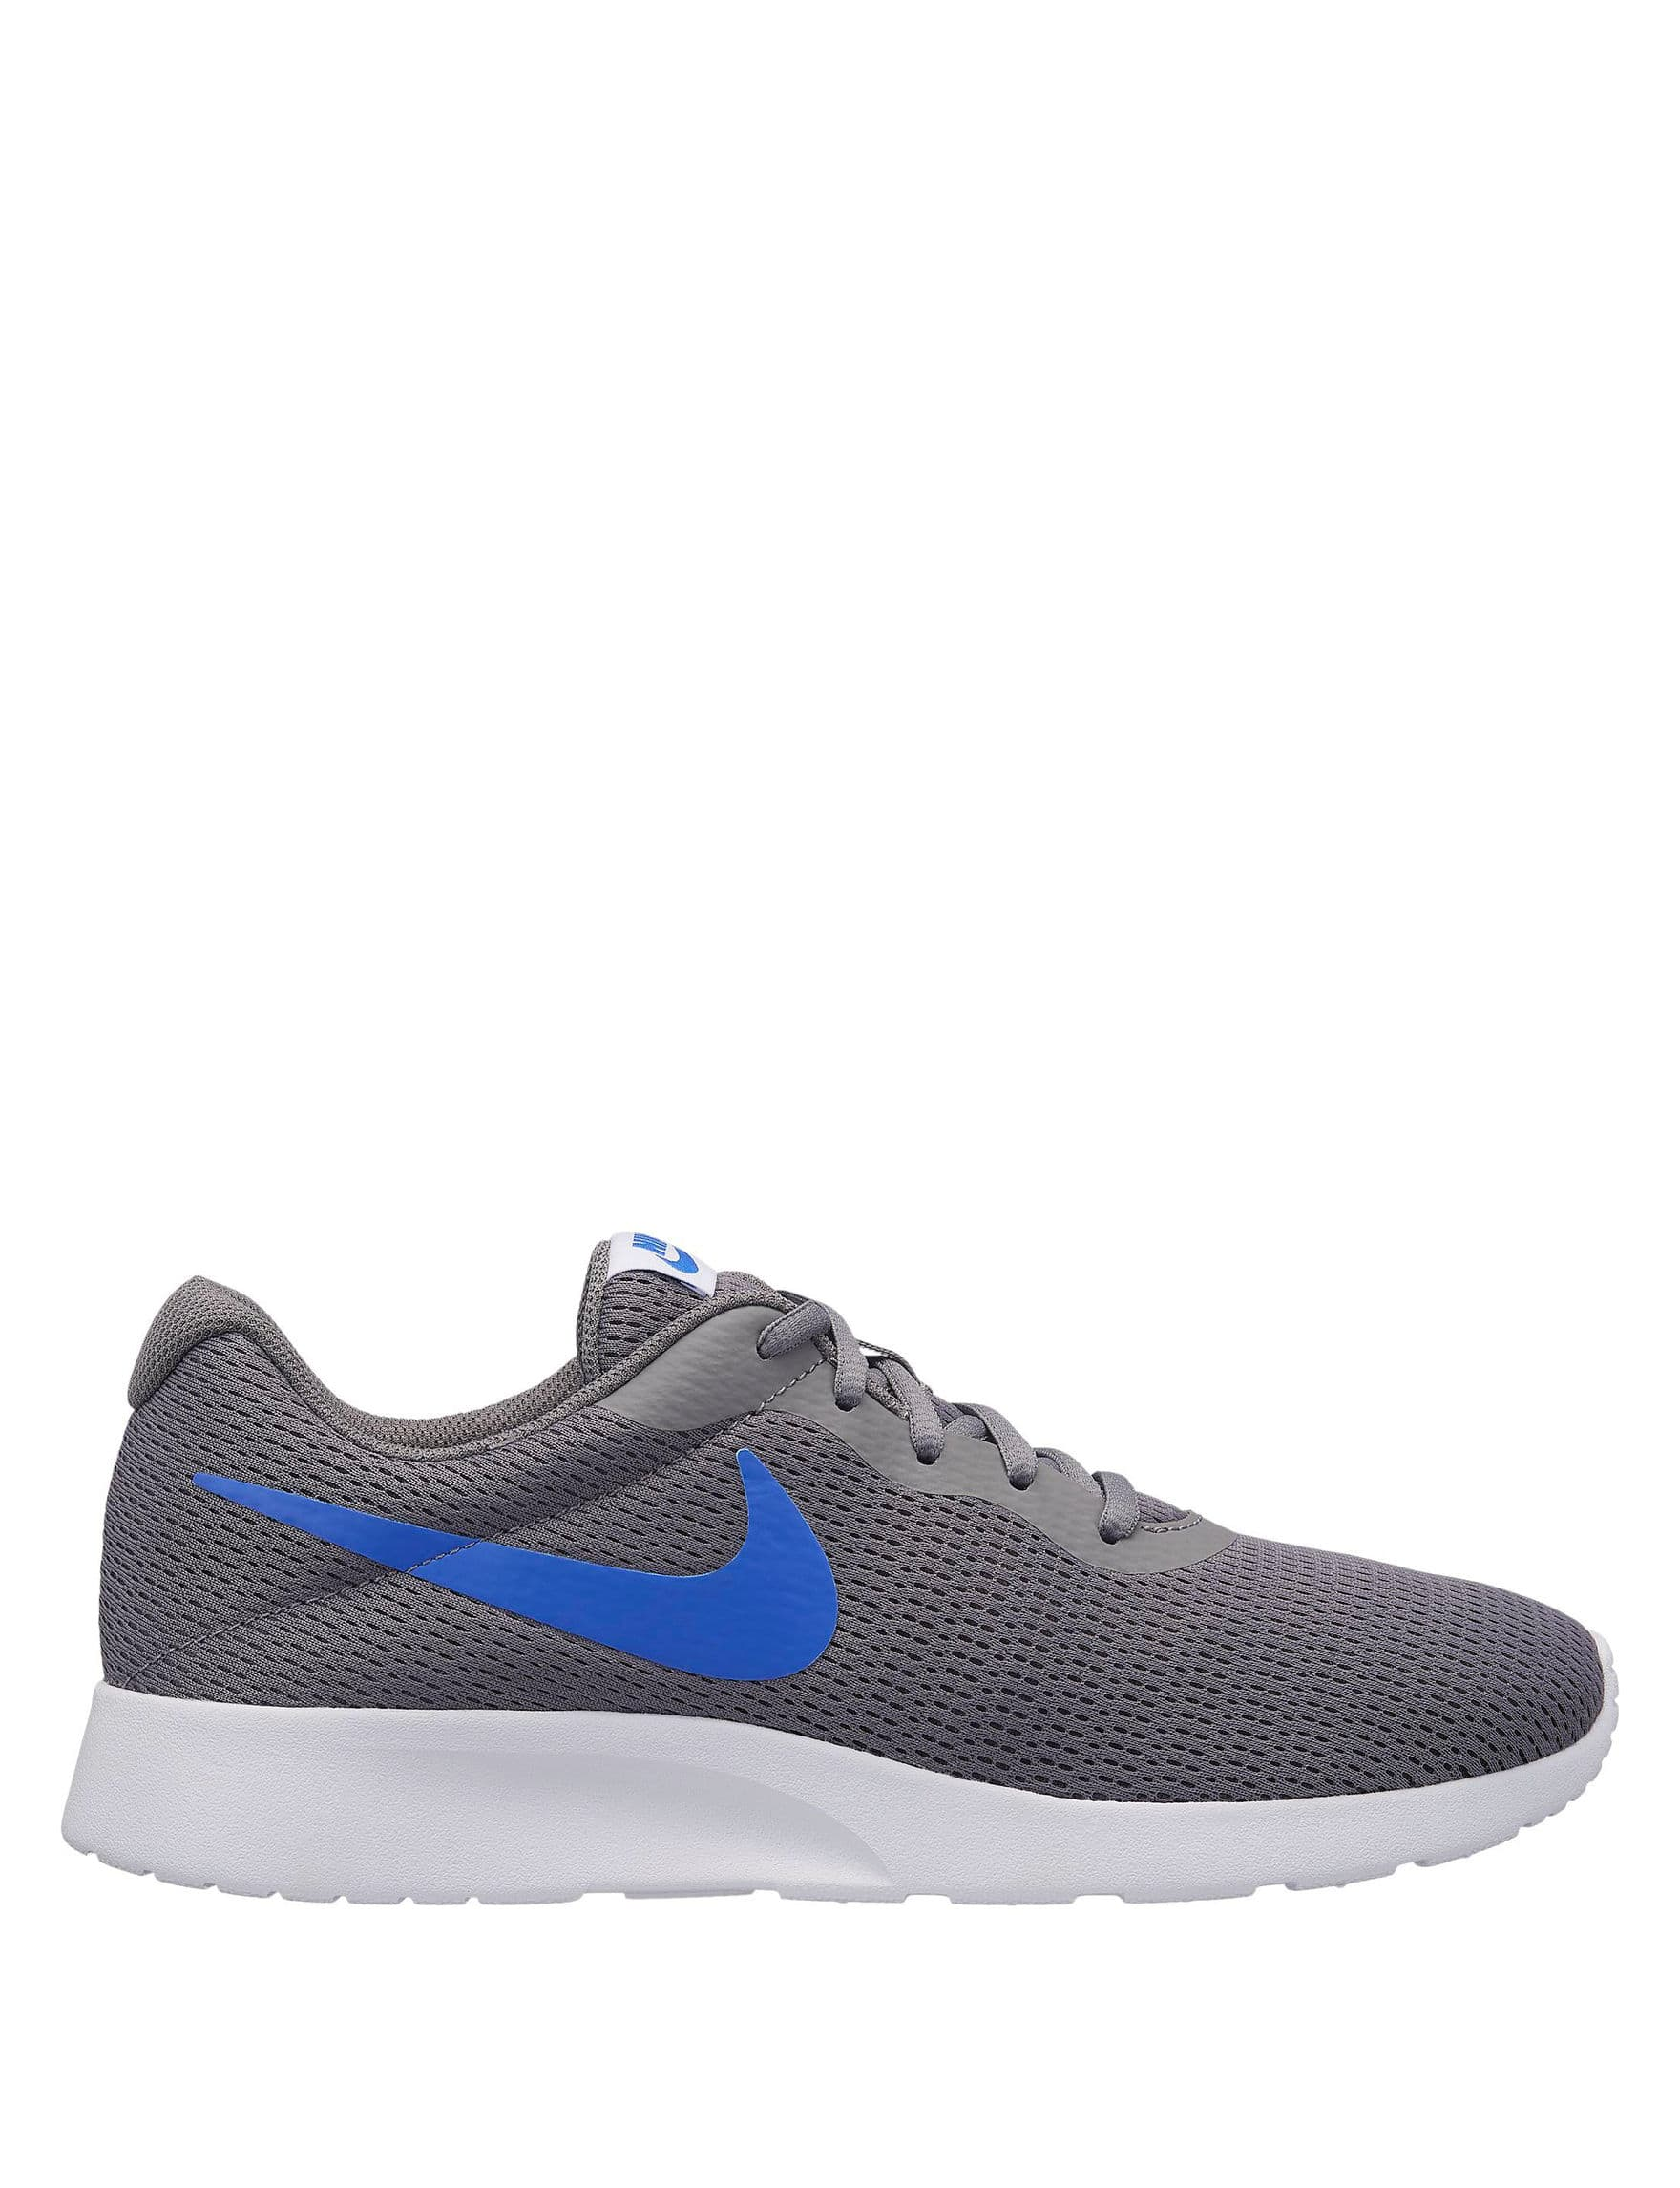 Nike Men s Shoes  Tanjun Athletic Shoes or Flex Experience RN ... a3463f9dcd4d6